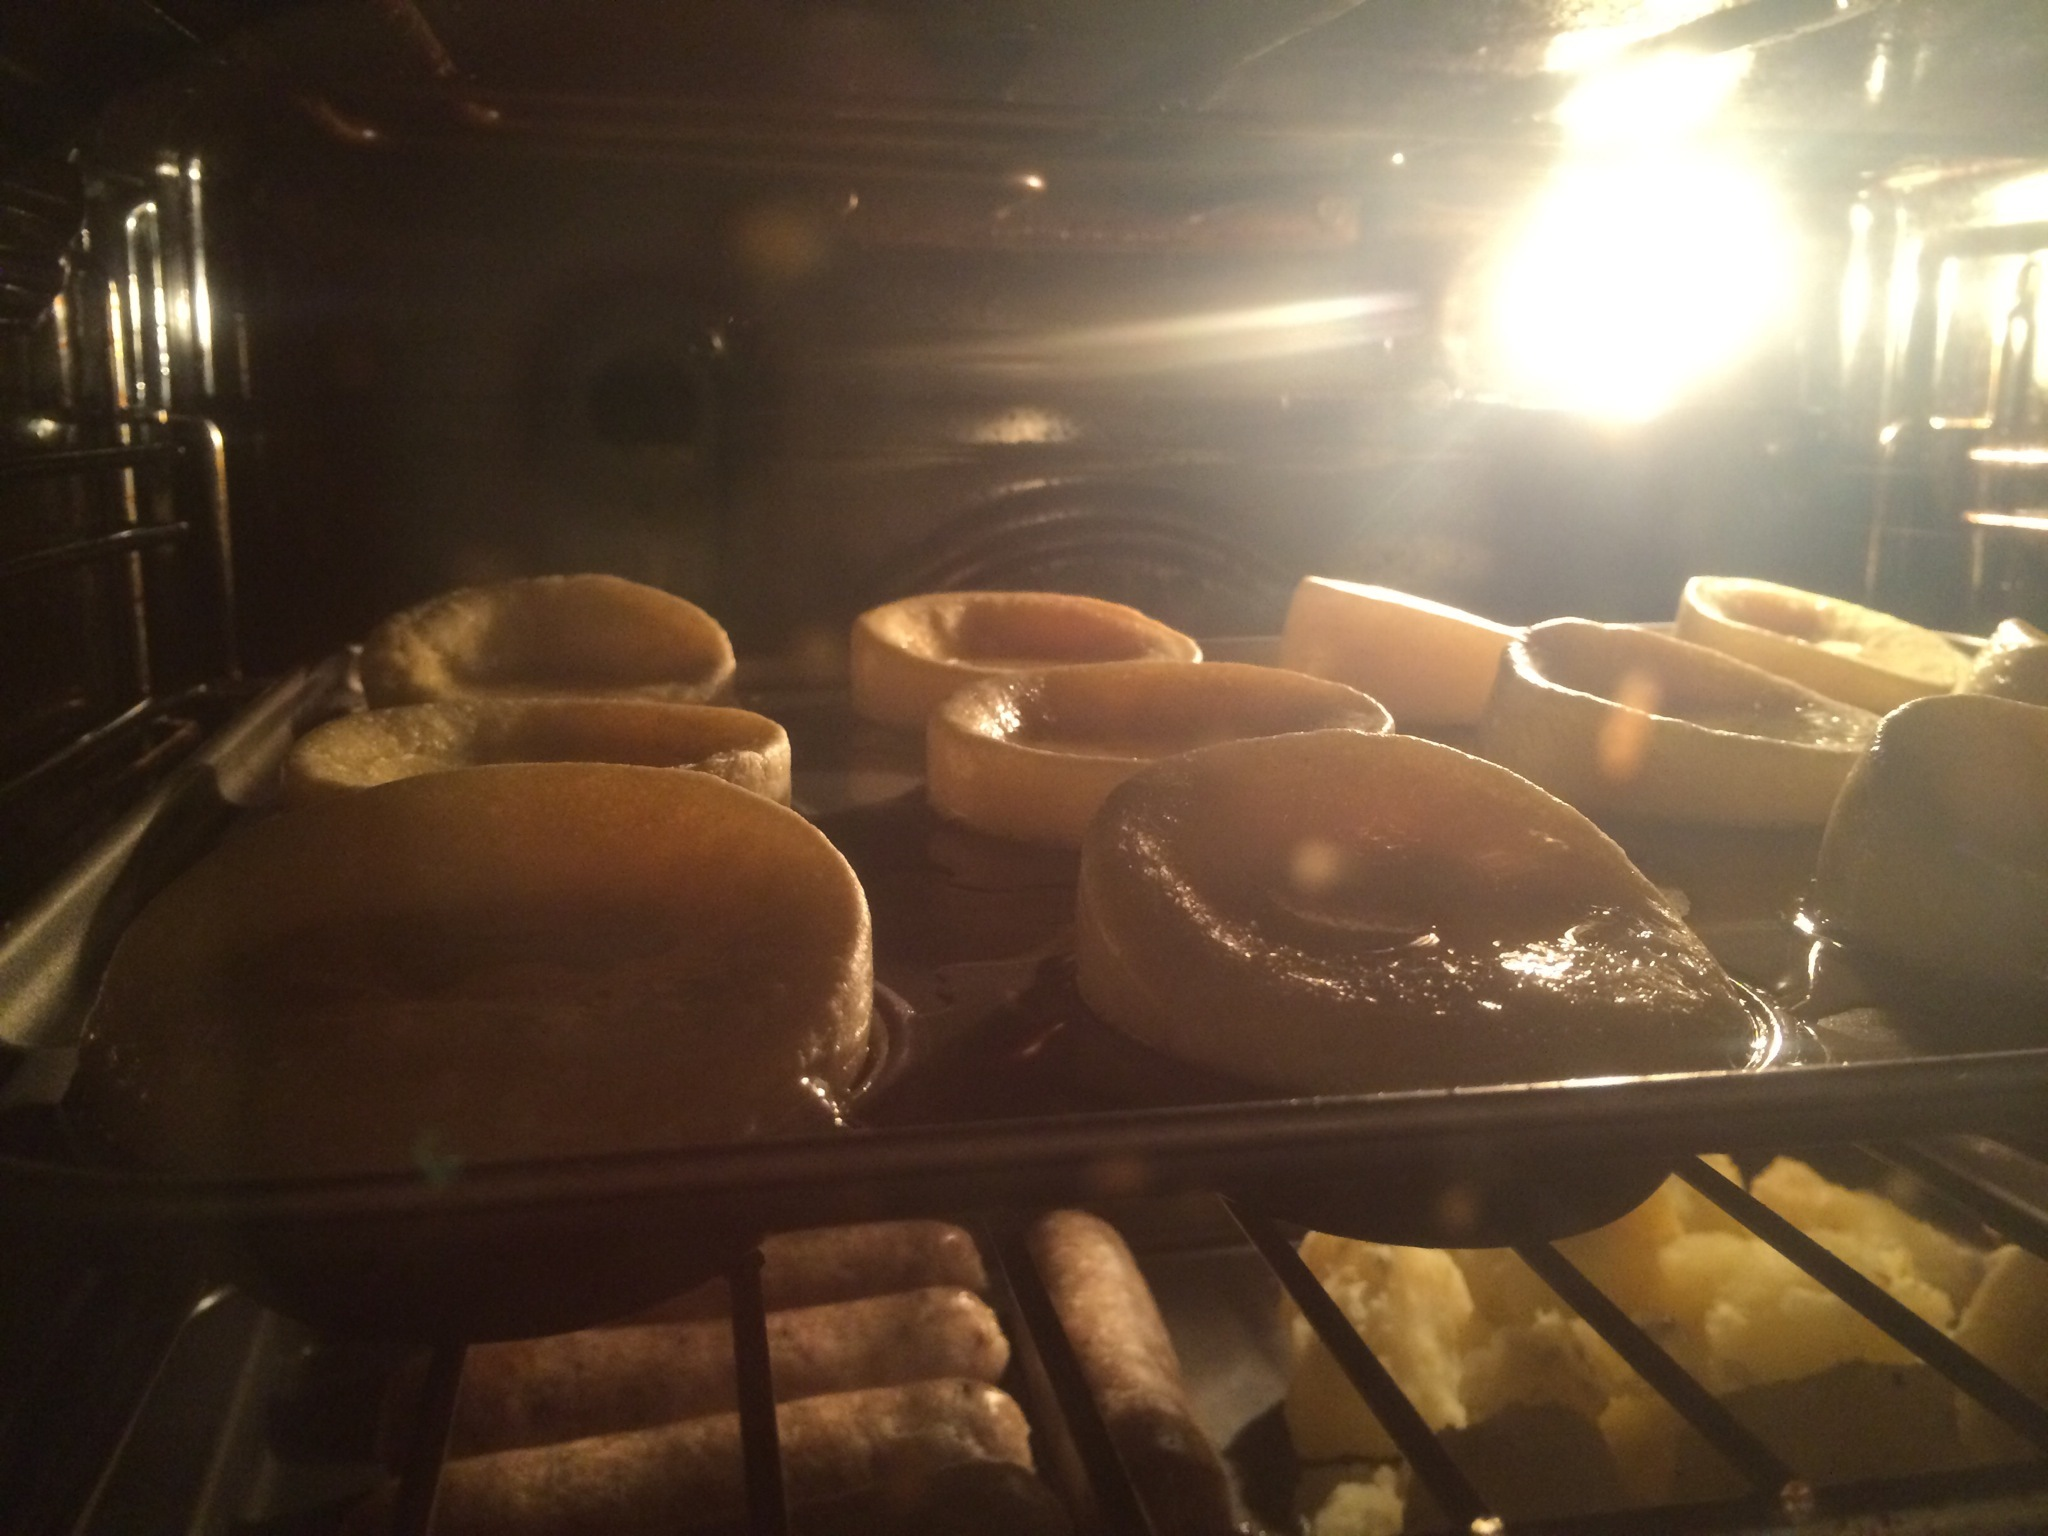 Yorkshire Puddings!